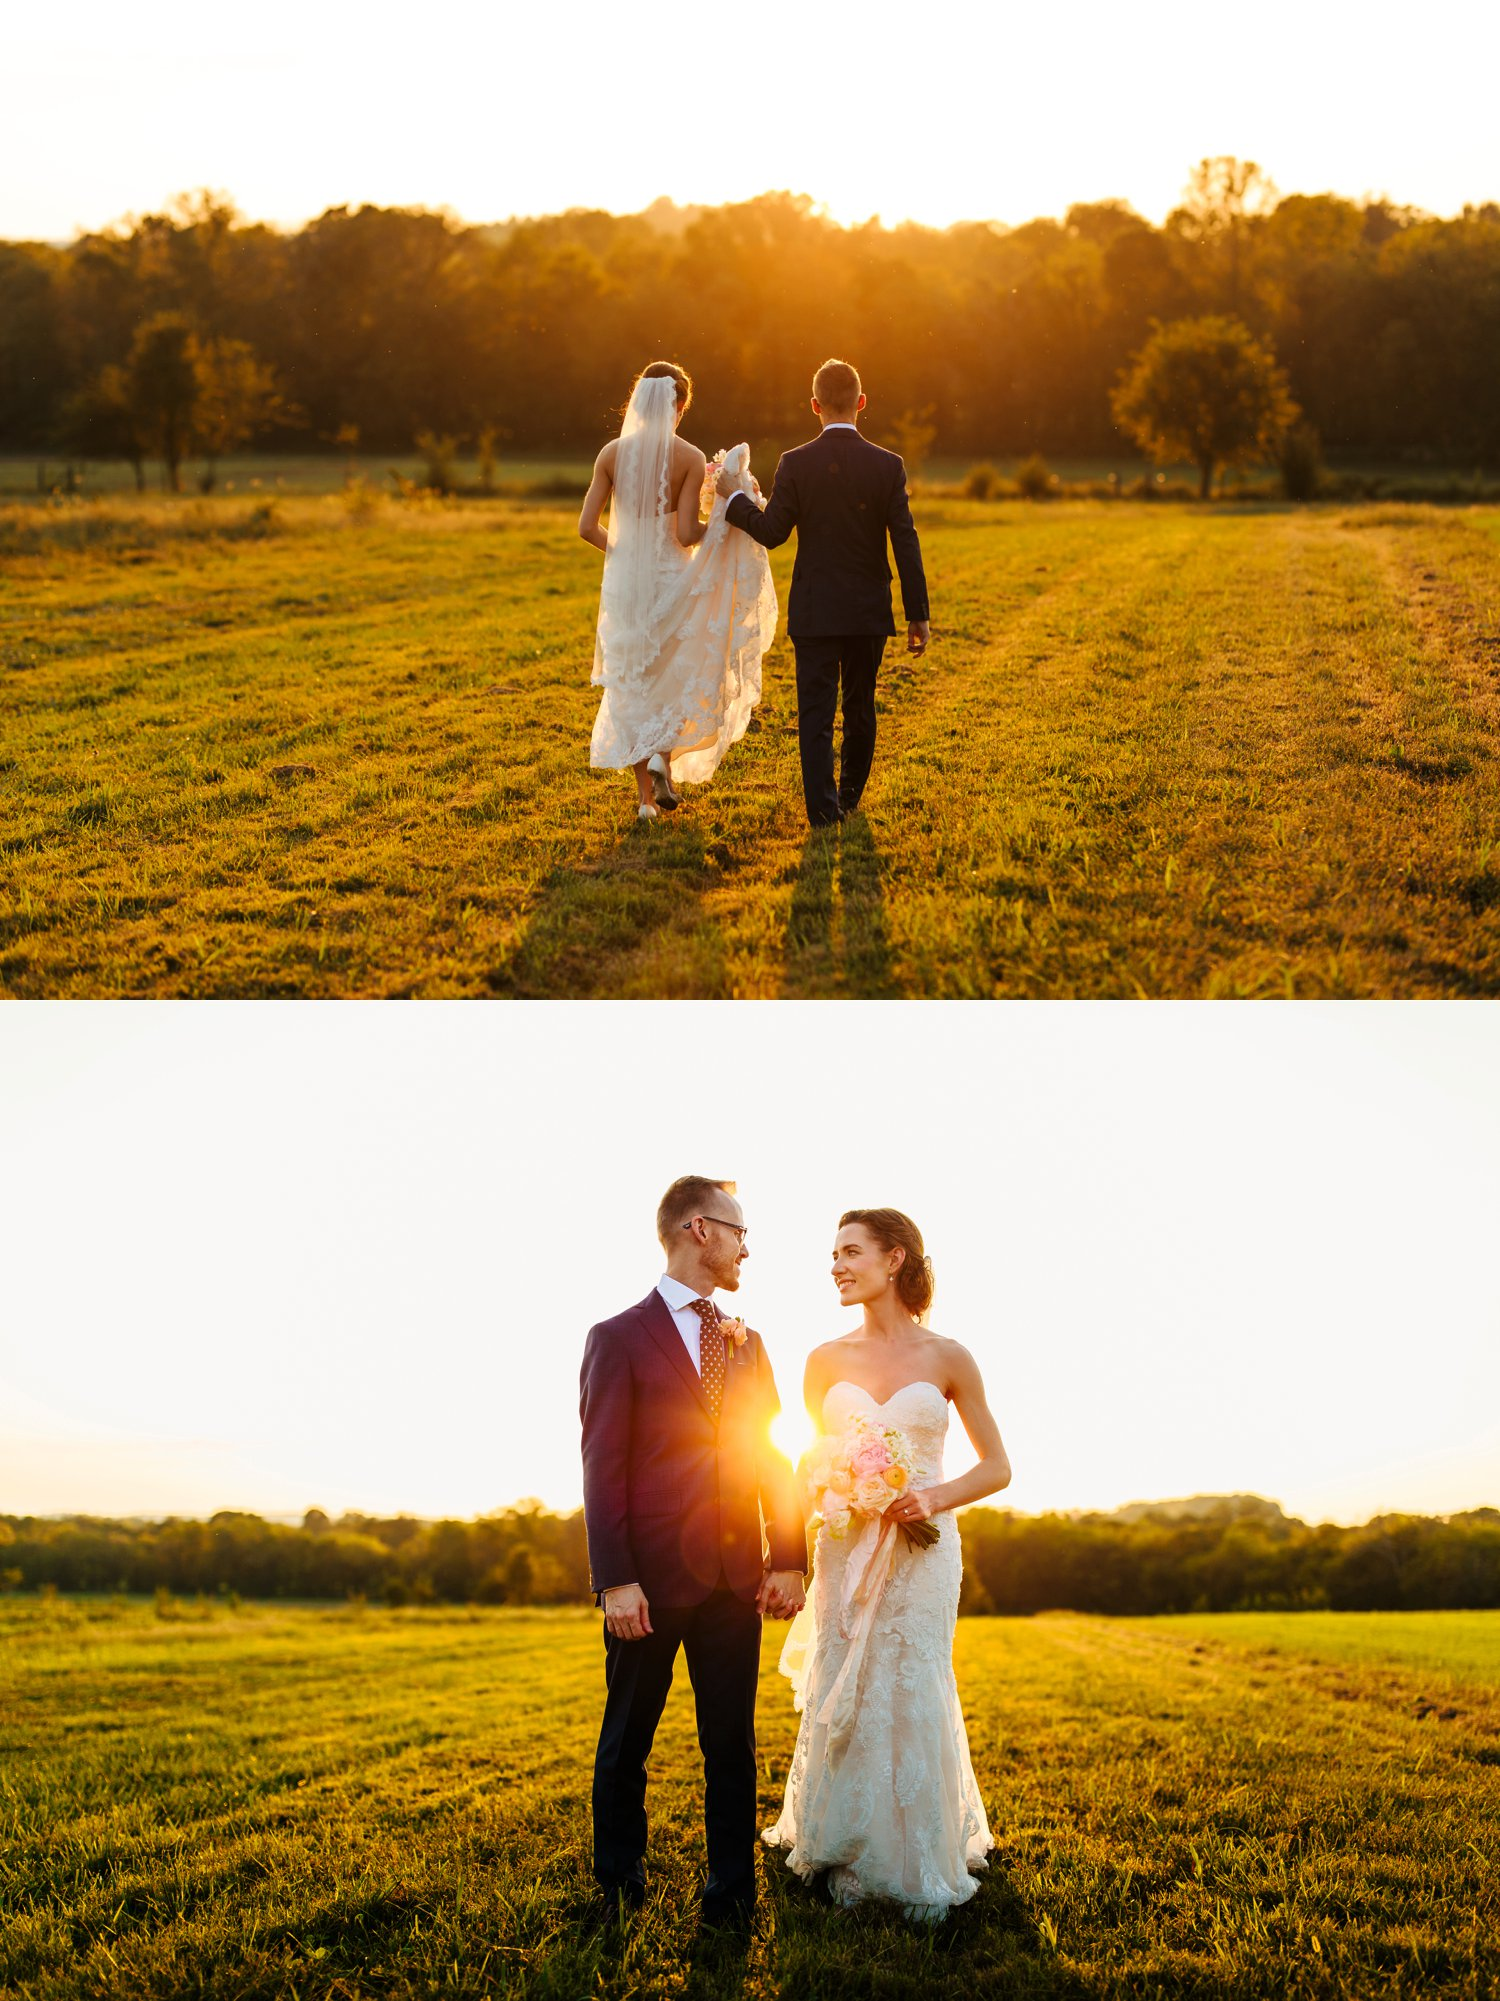 CK-Photo-Nashville-engagement-wedding-photographer-allenbrooke-farms